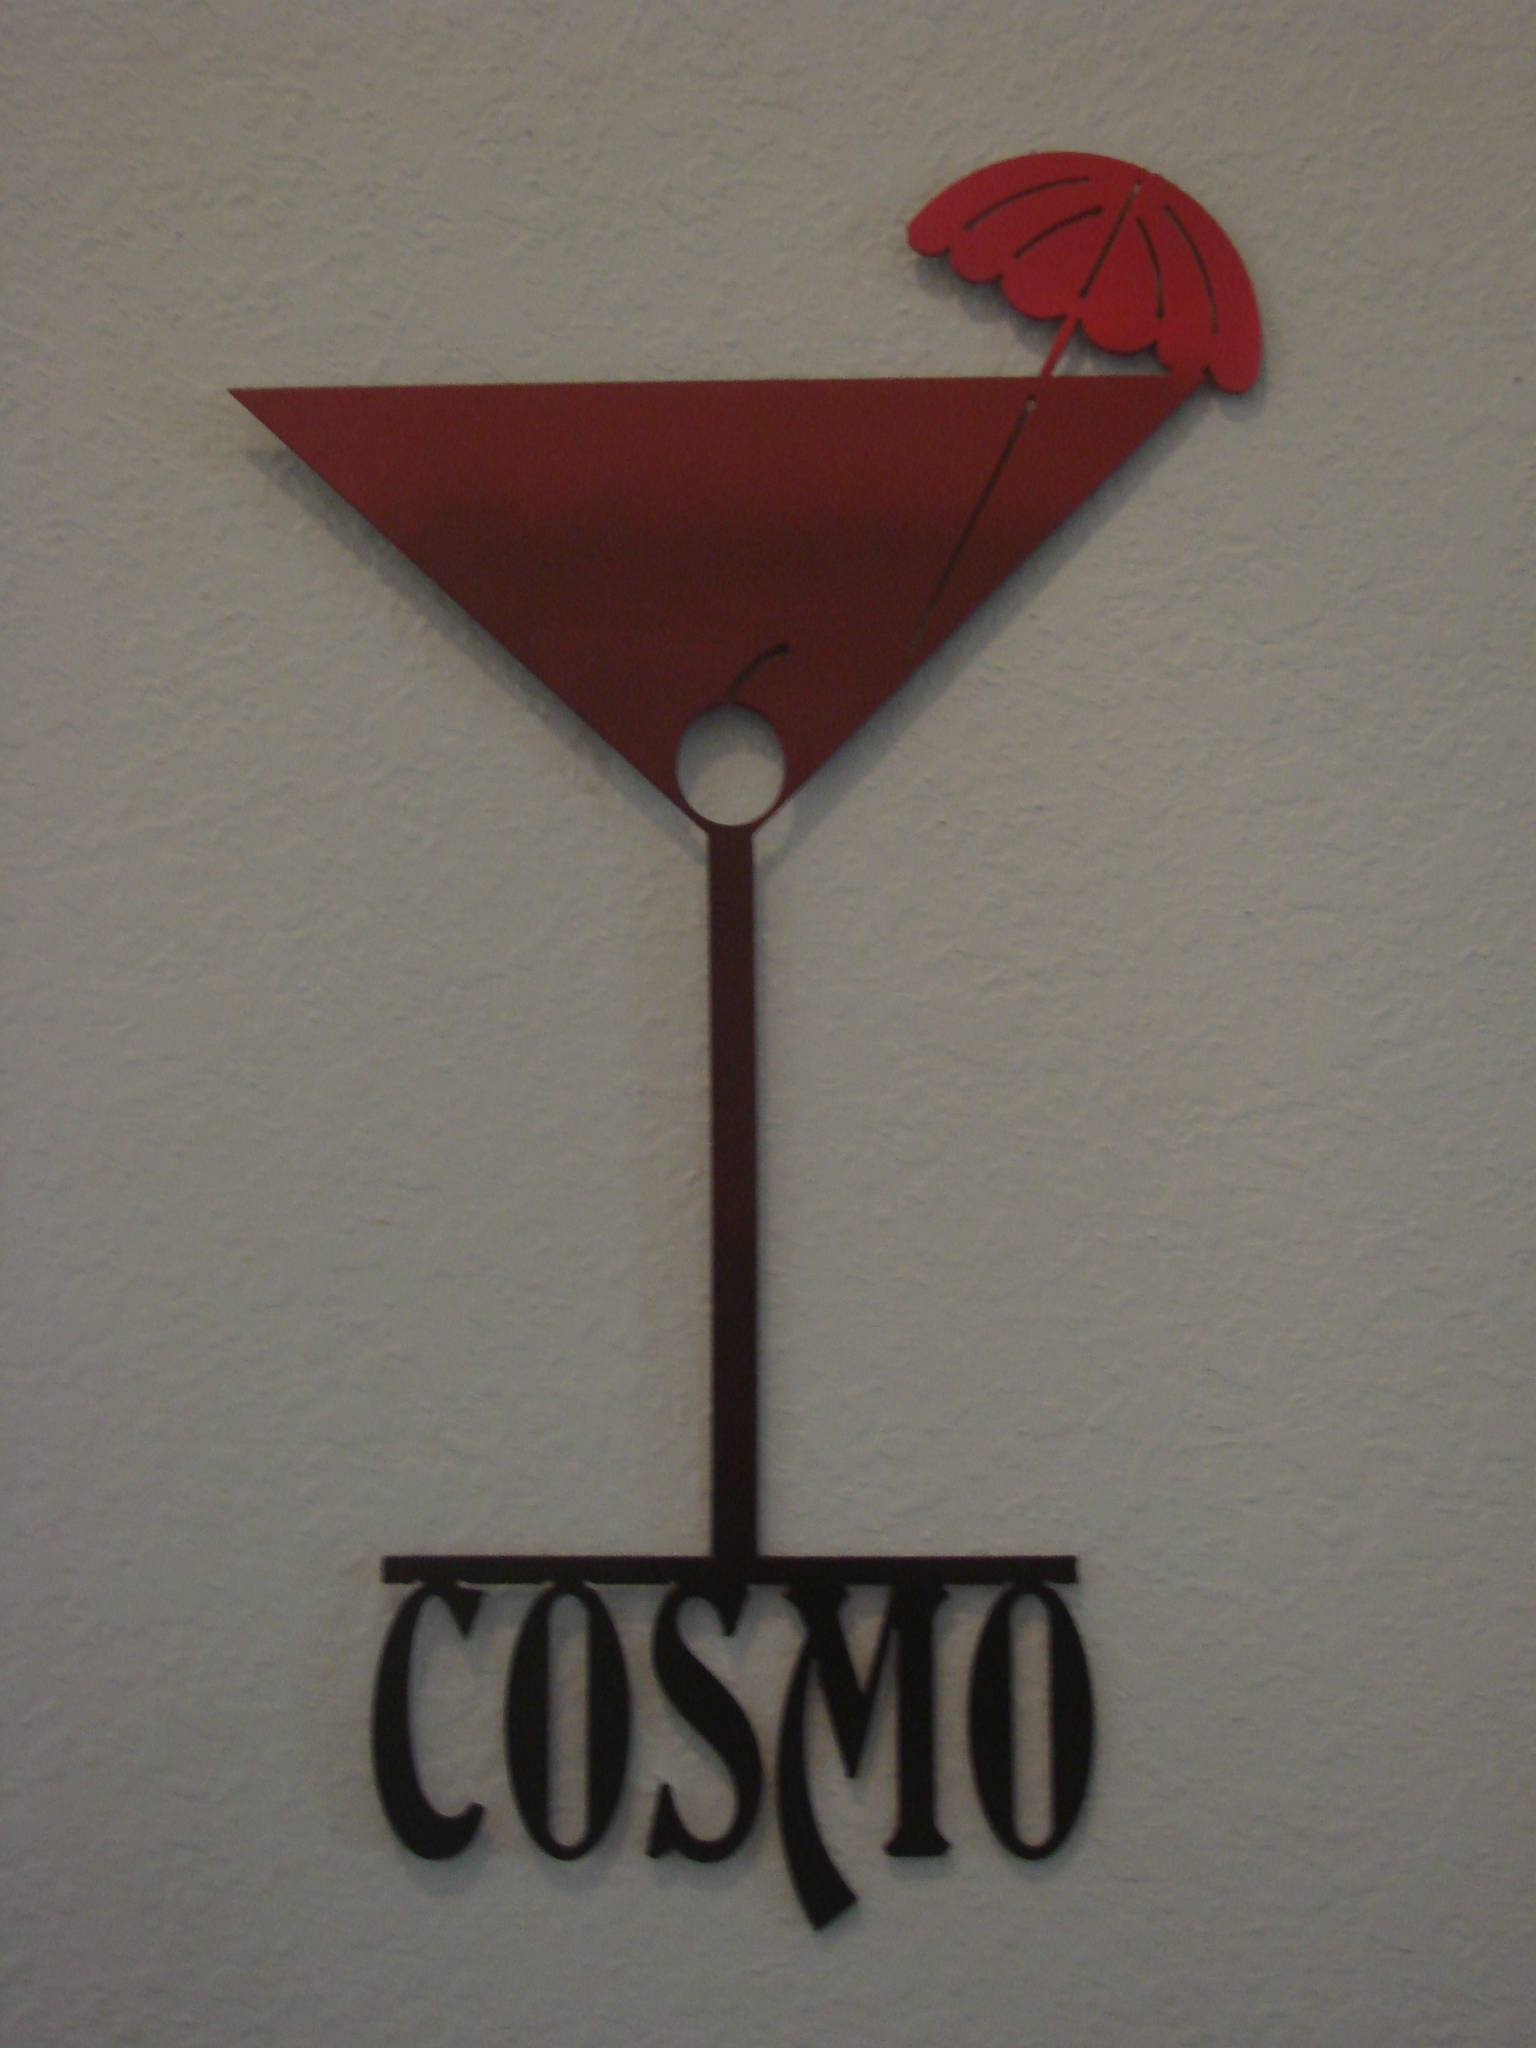 16 Gauge Ombre Red To Black Cosmopolitan Martini Glass Metal Wall Throughout Most Recently Released Martini Glass Wall Art (View 1 of 30)